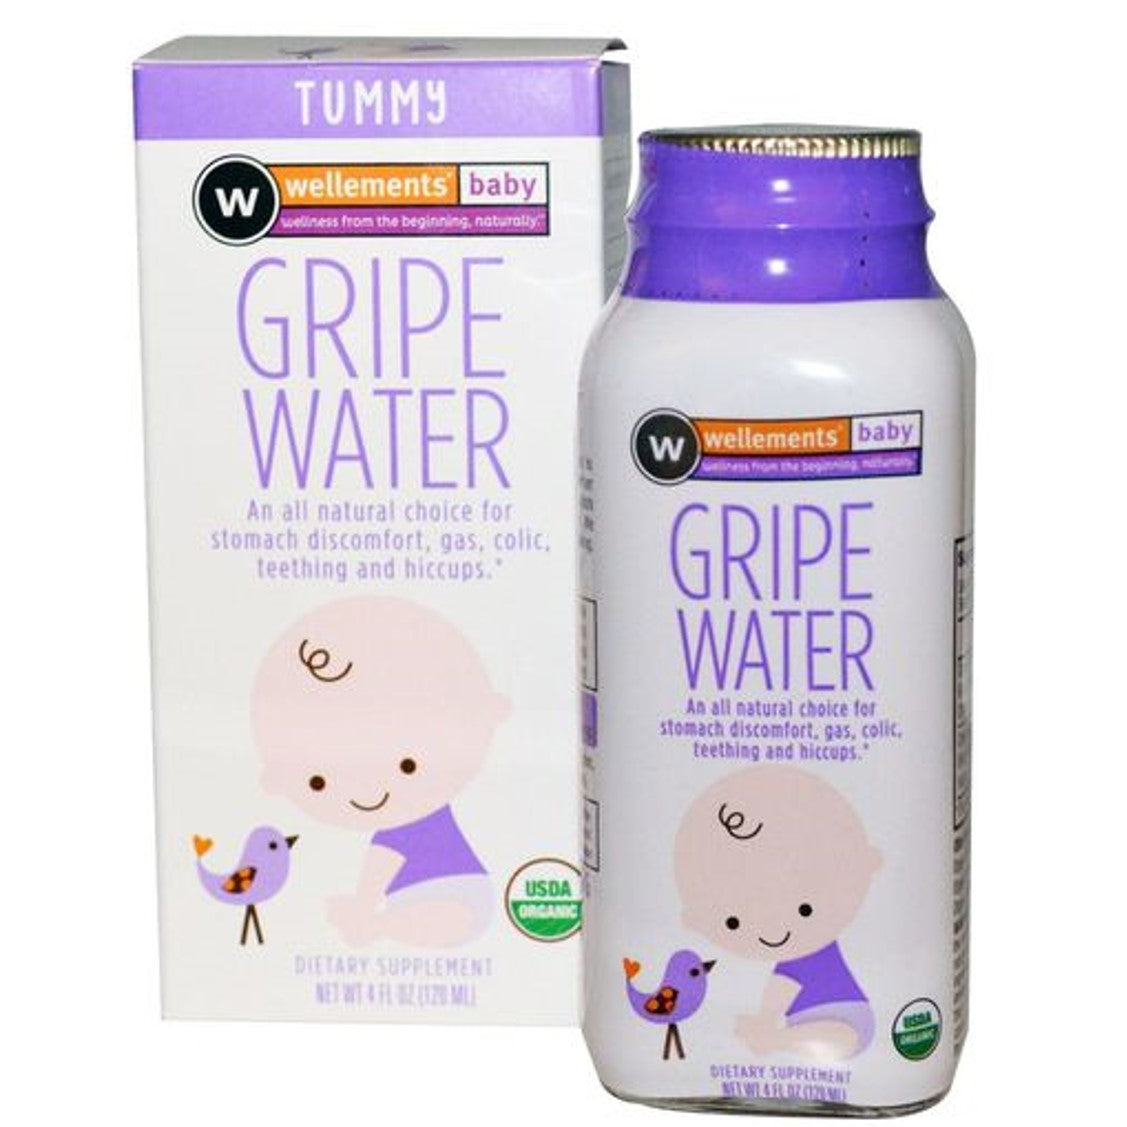 Wellements Gripewater for Colic (Organic), 120ml.-NaturesWisdom